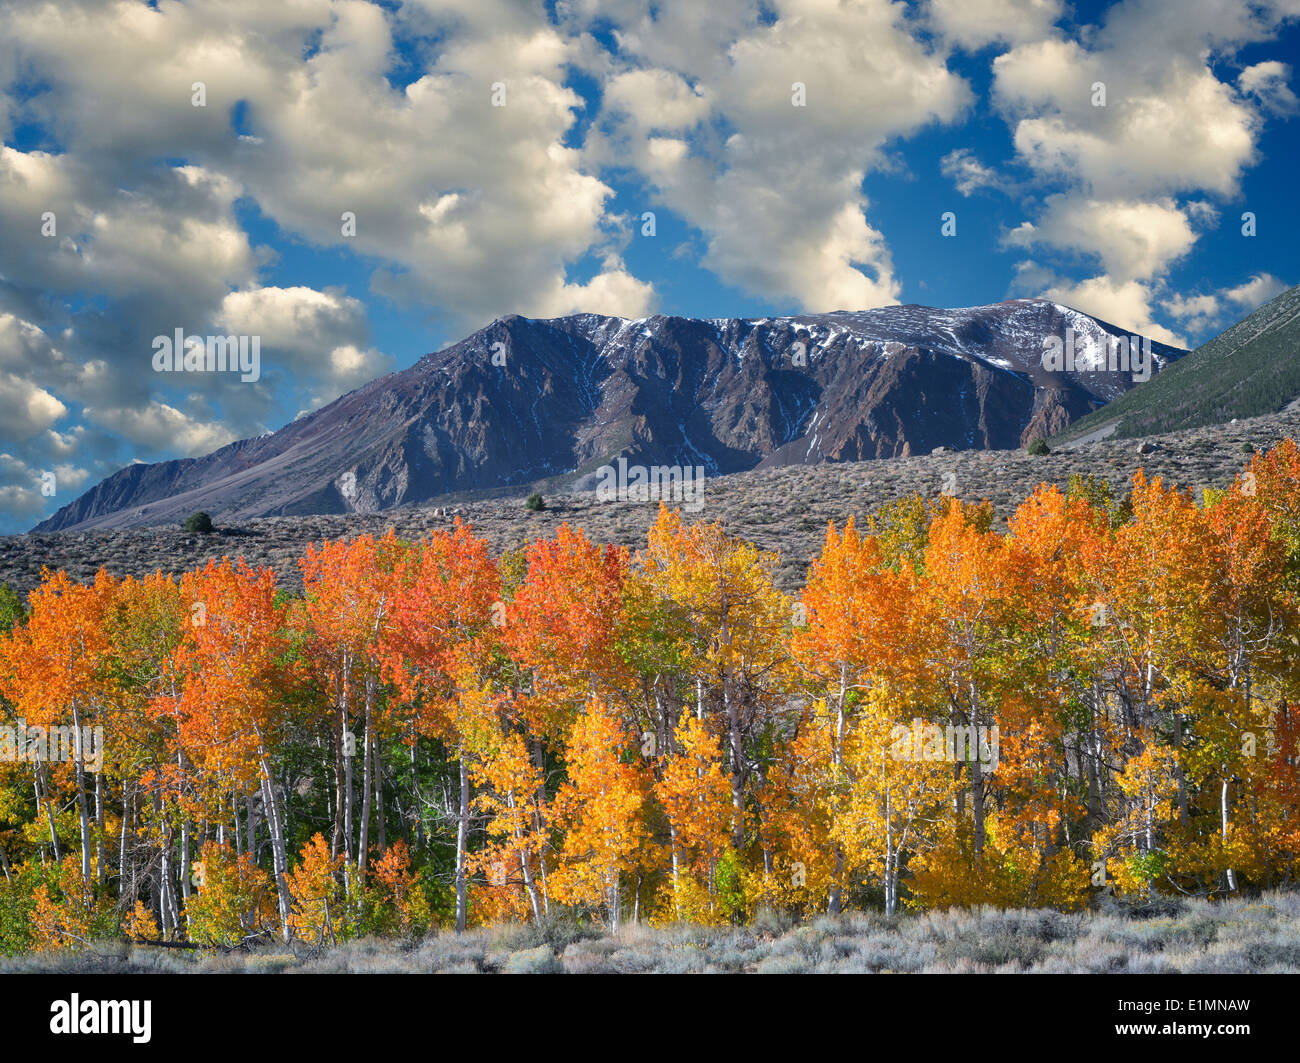 Bloody Canyon. aspen trees in fall color. Eastern Sierra Nevada Mountains, California - Stock Image